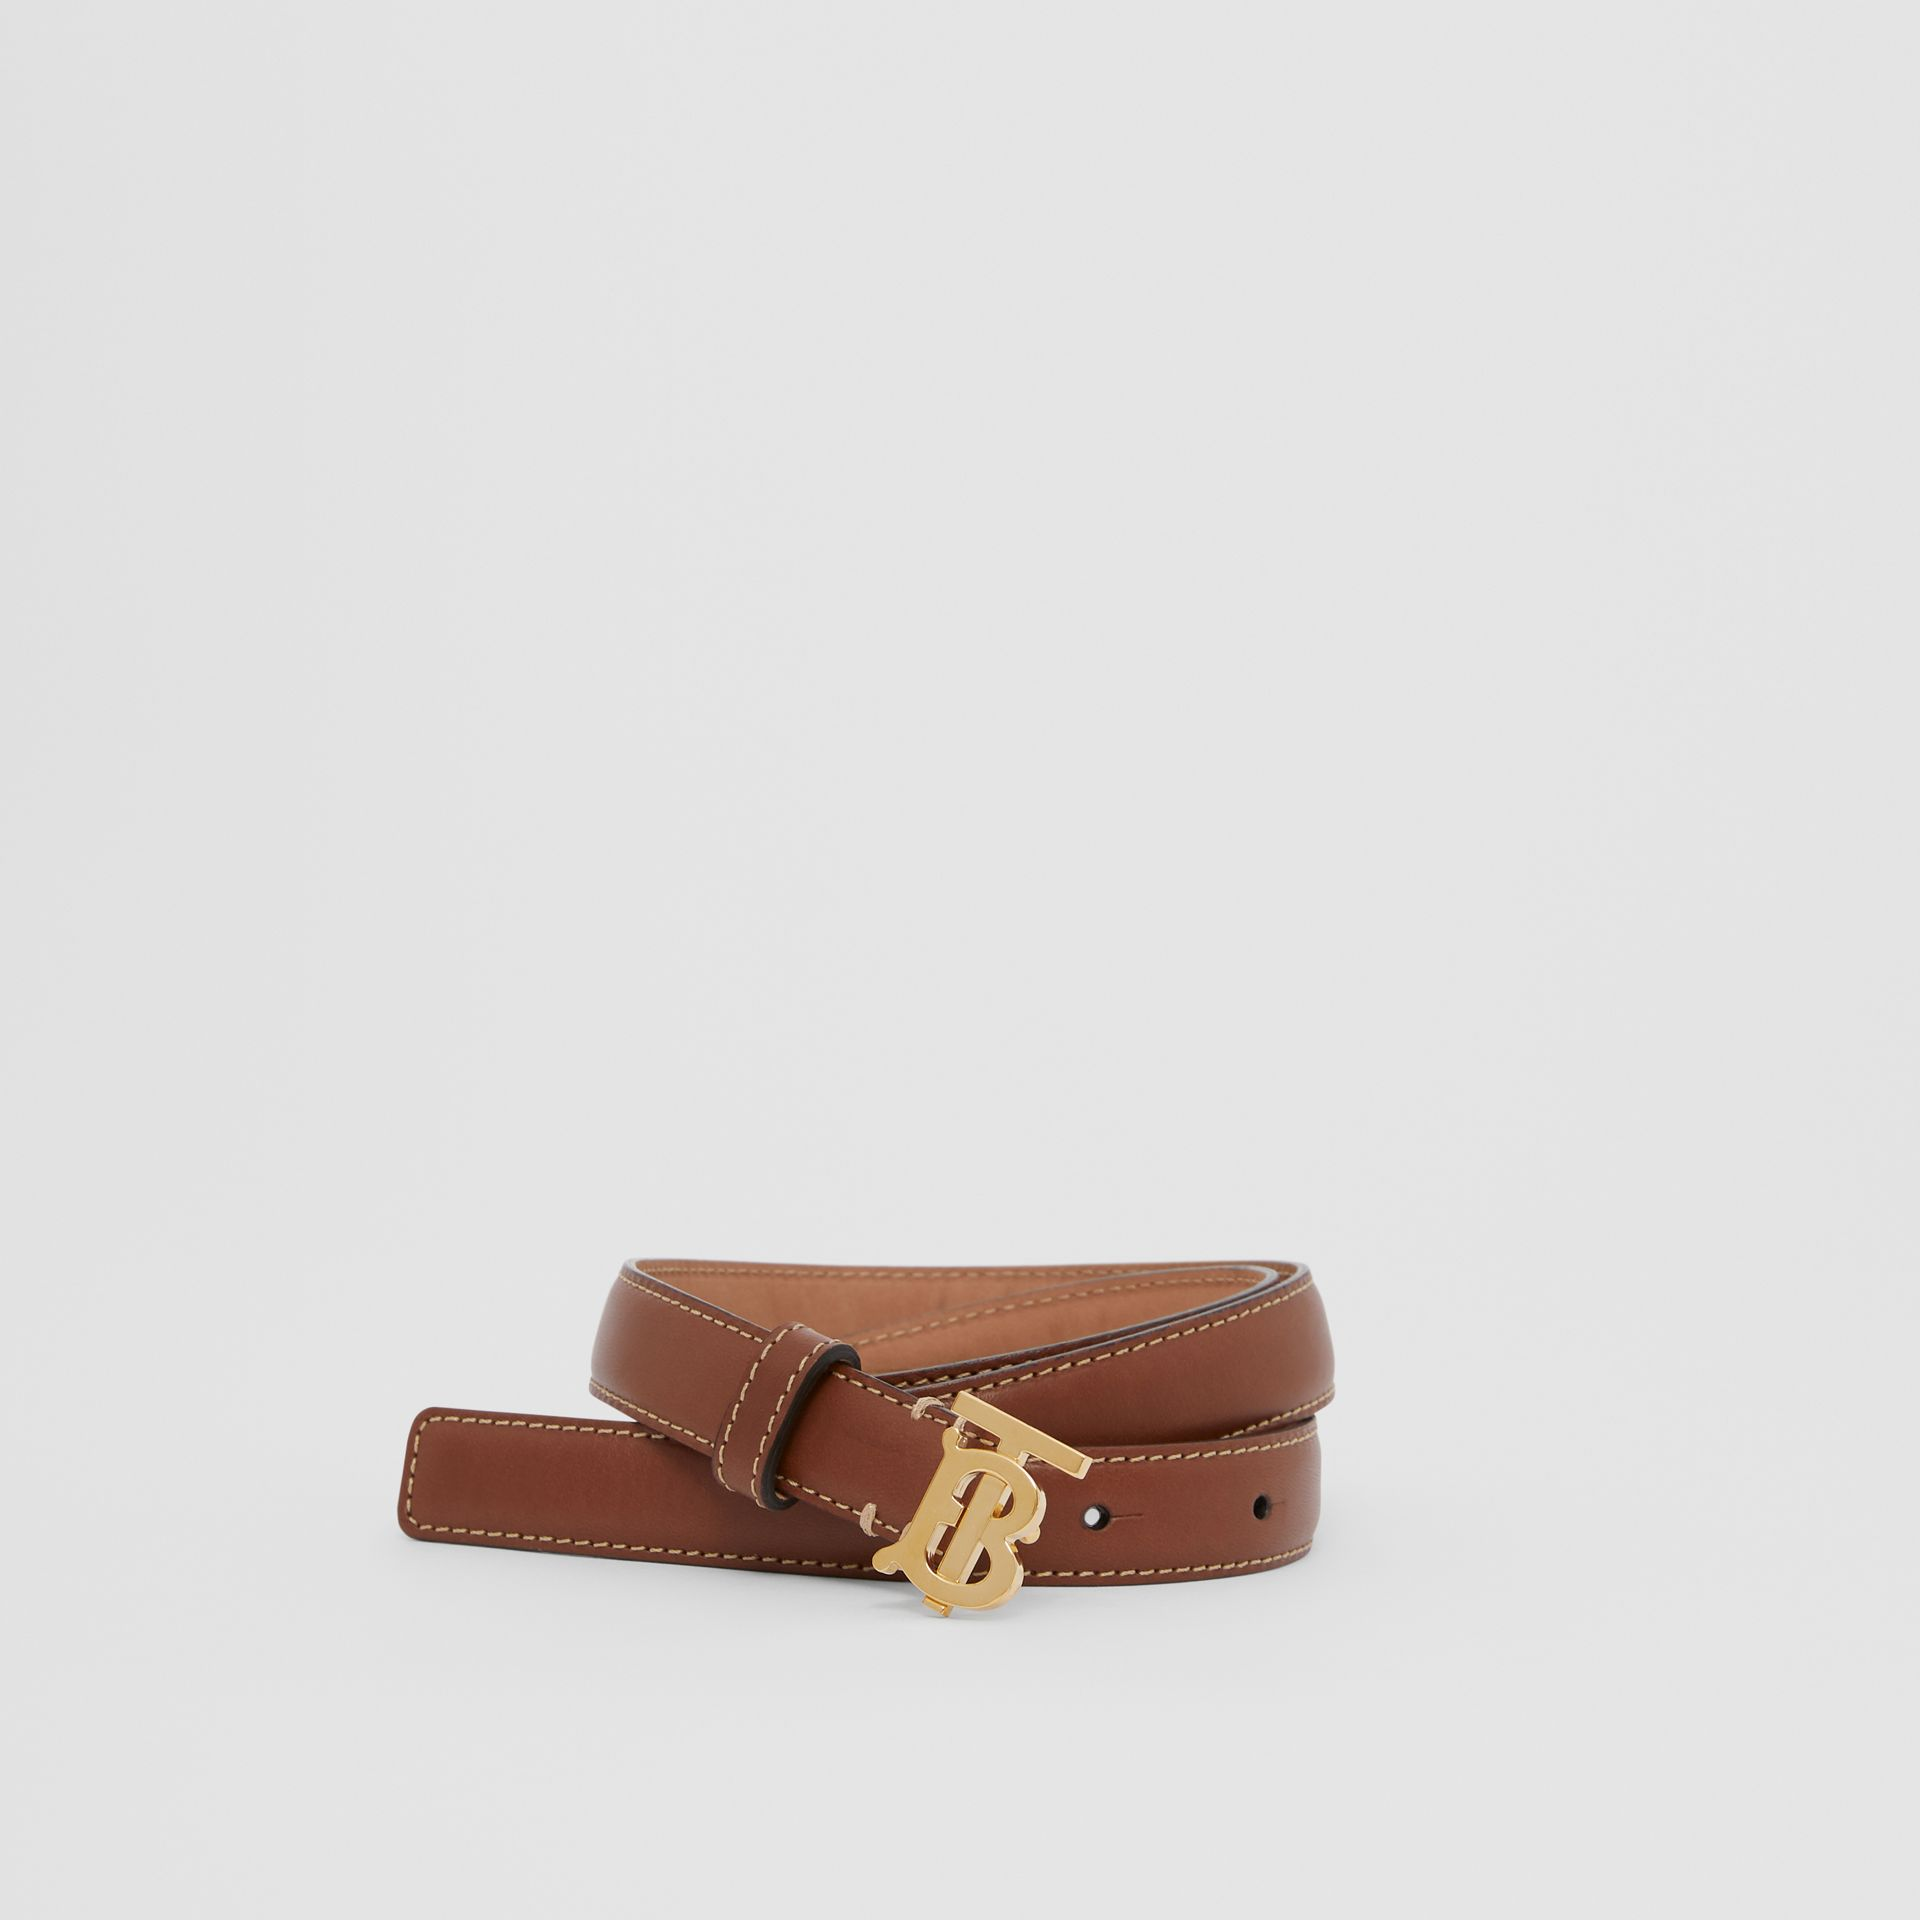 Monogram Motif Topstitched Leather Belt in Tan/light Gold - Women | Burberry United Kingdom - gallery image 0